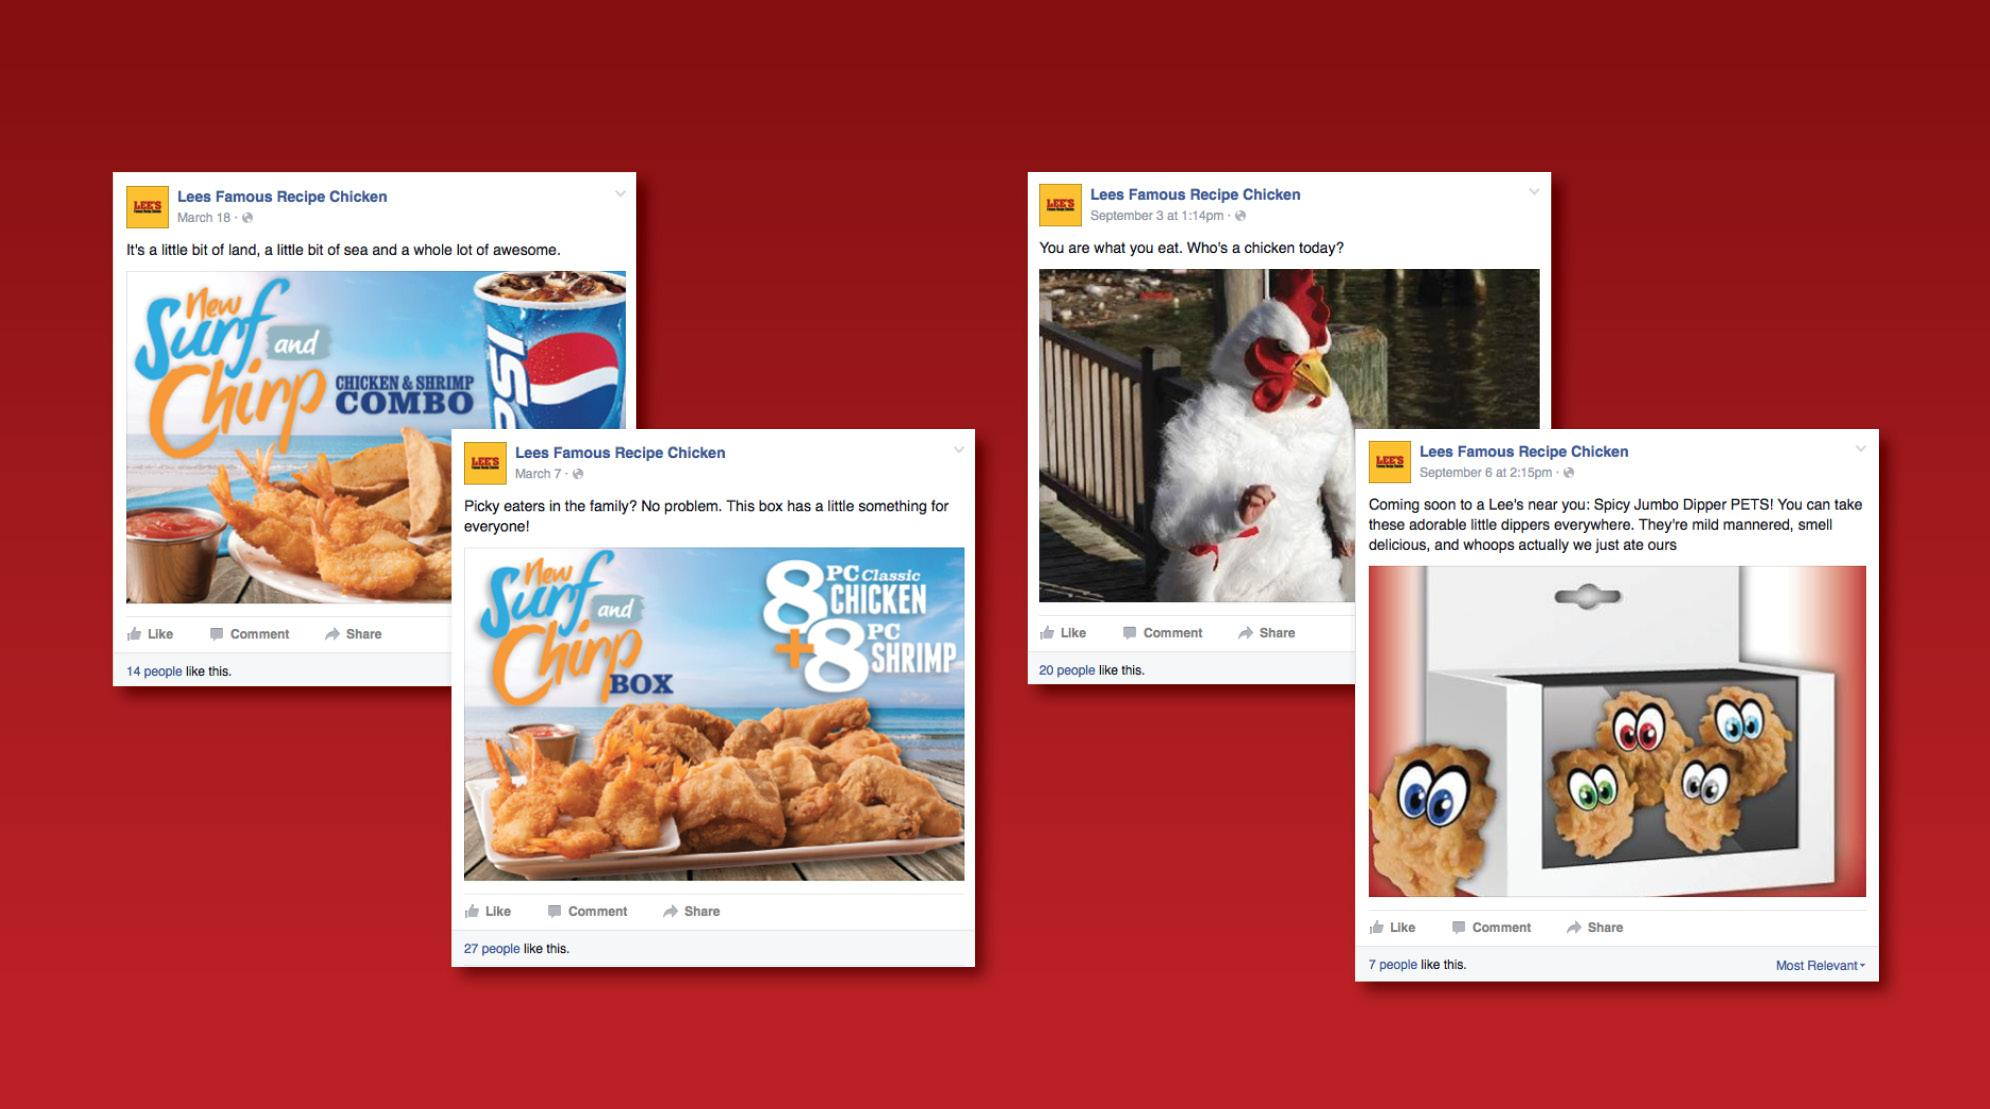 Lee's Famous Recipe Chicken Social Campaign